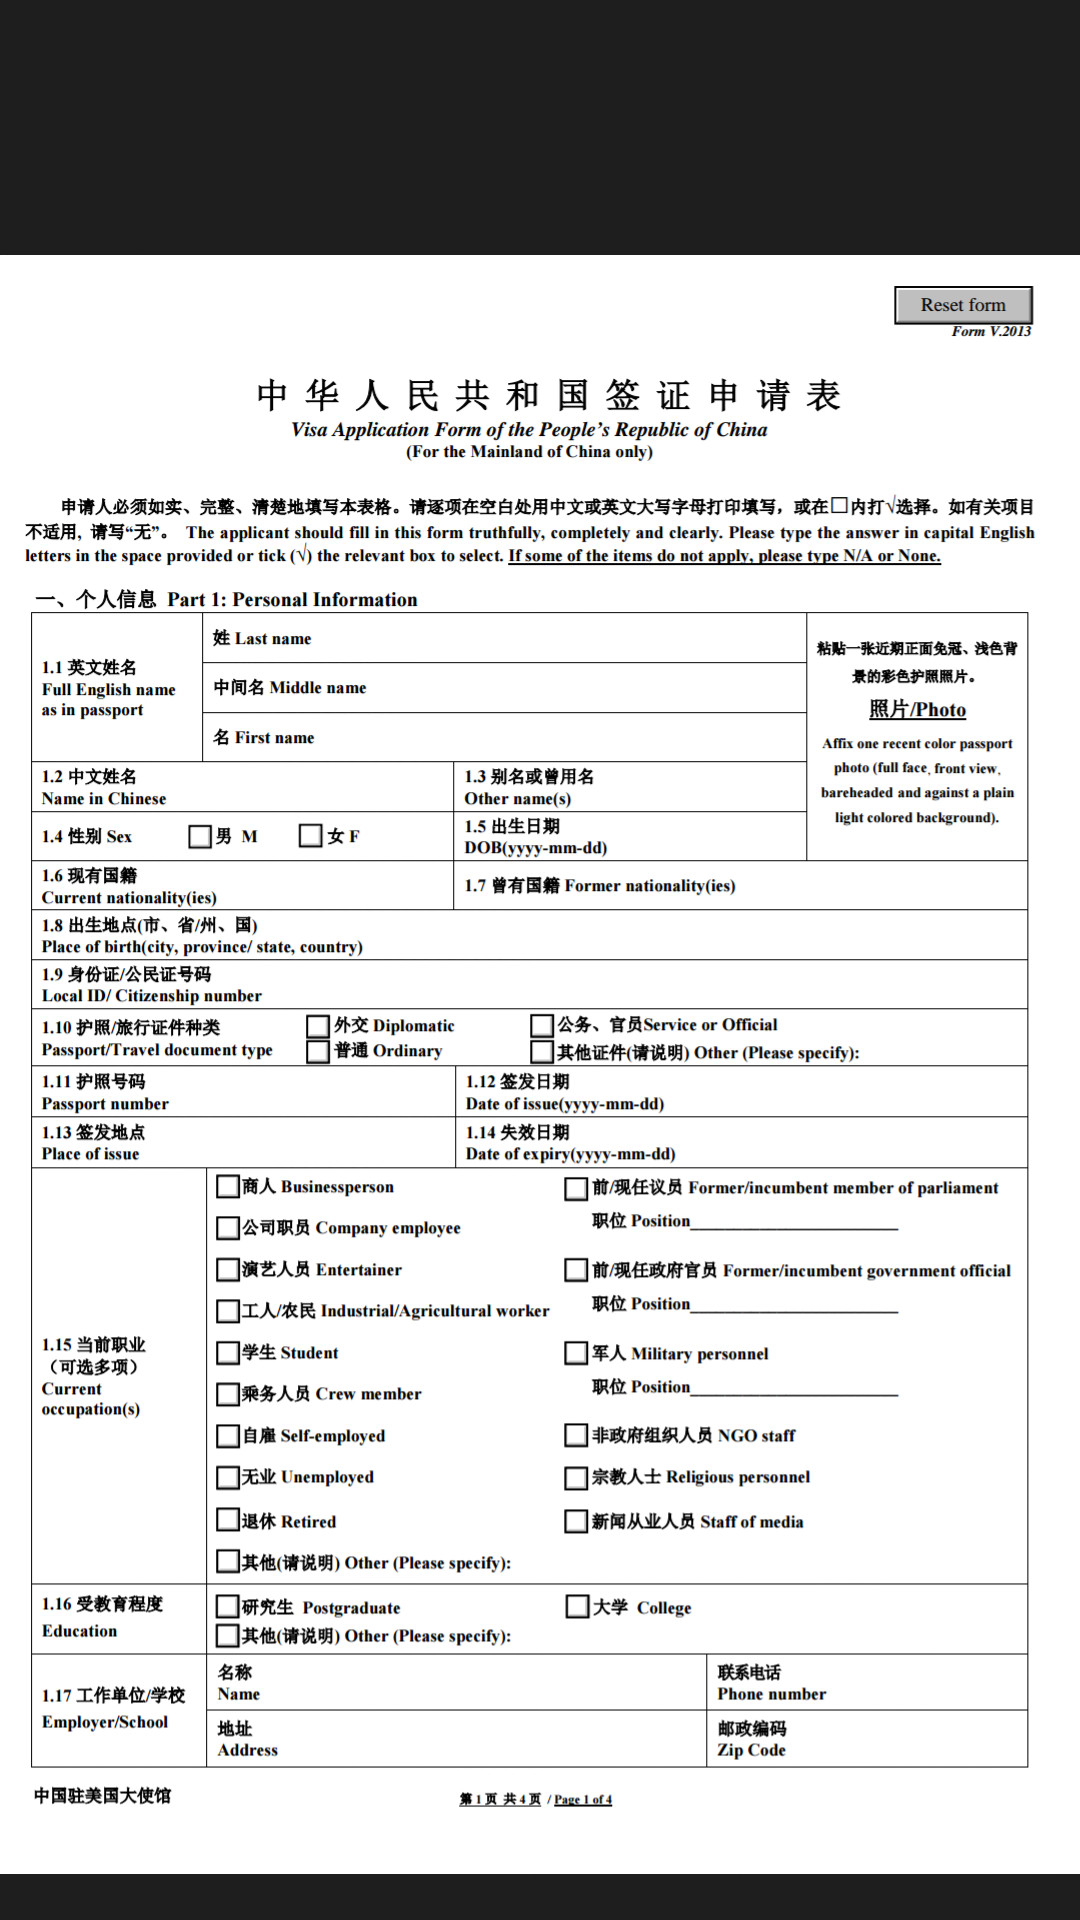 China Visa Application Form Hong Kong Residents